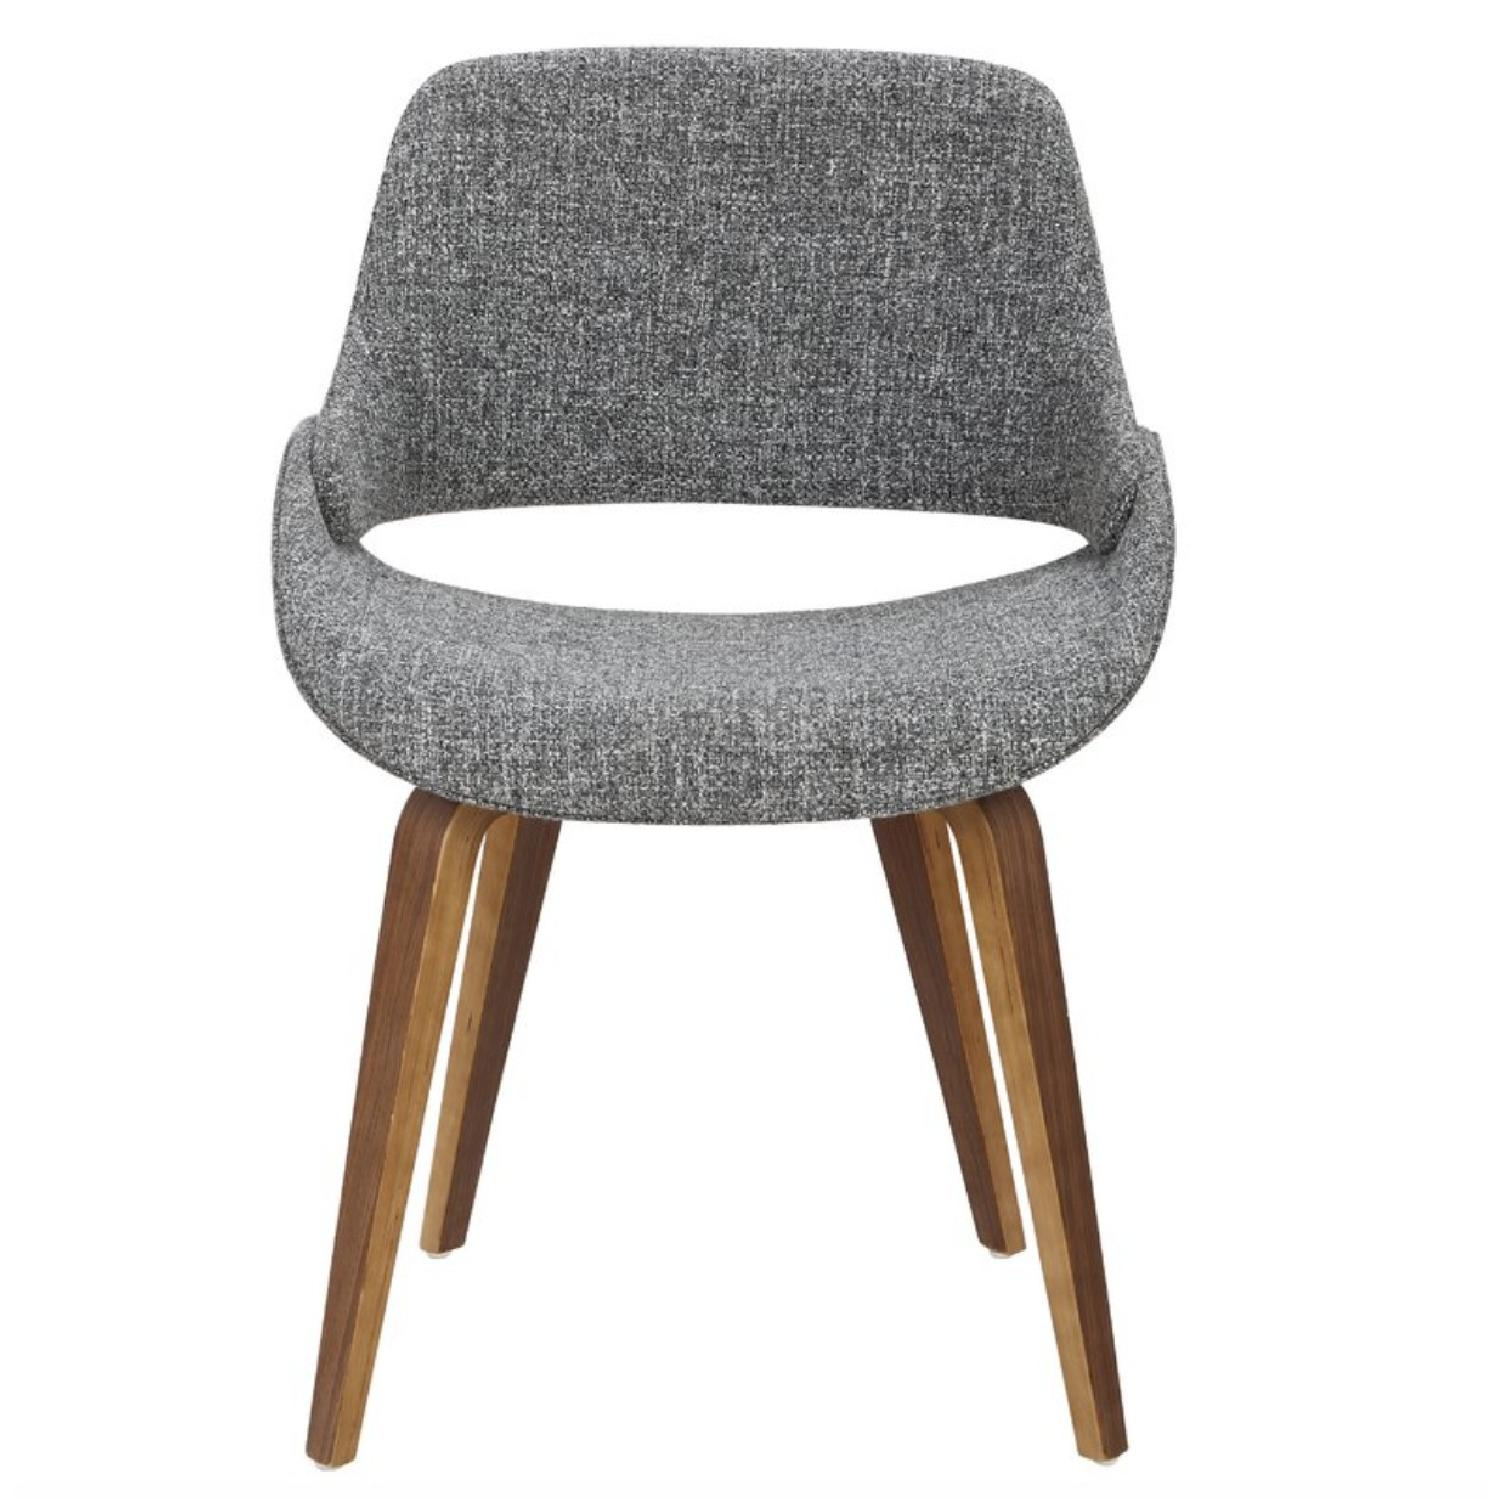 Langley Street Aird Upholstered Dining Chairs